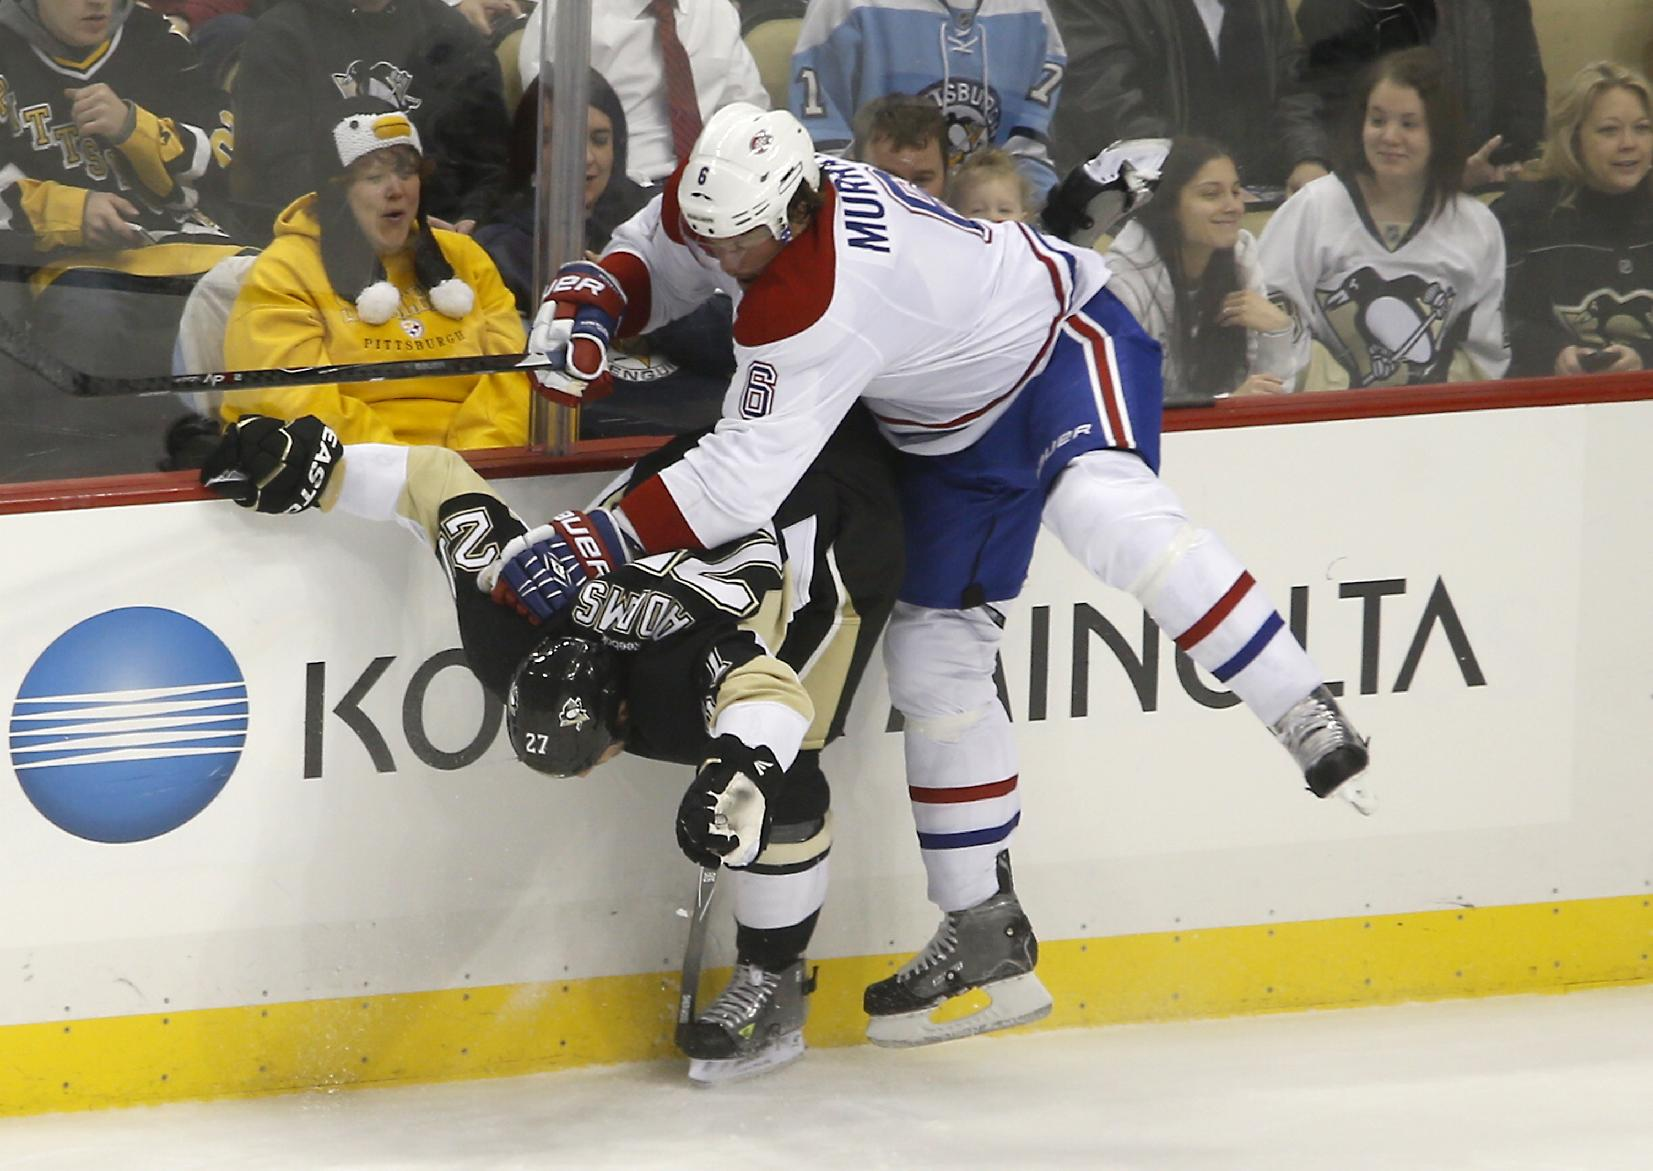 Montreal Canadiens' Douglas Murray (6) checks Pittsburgh Penguins' Craig Adams (27) during the first period of an NHL hockey game, Thursday, Feb. 27, 2014 in Pittsburgh